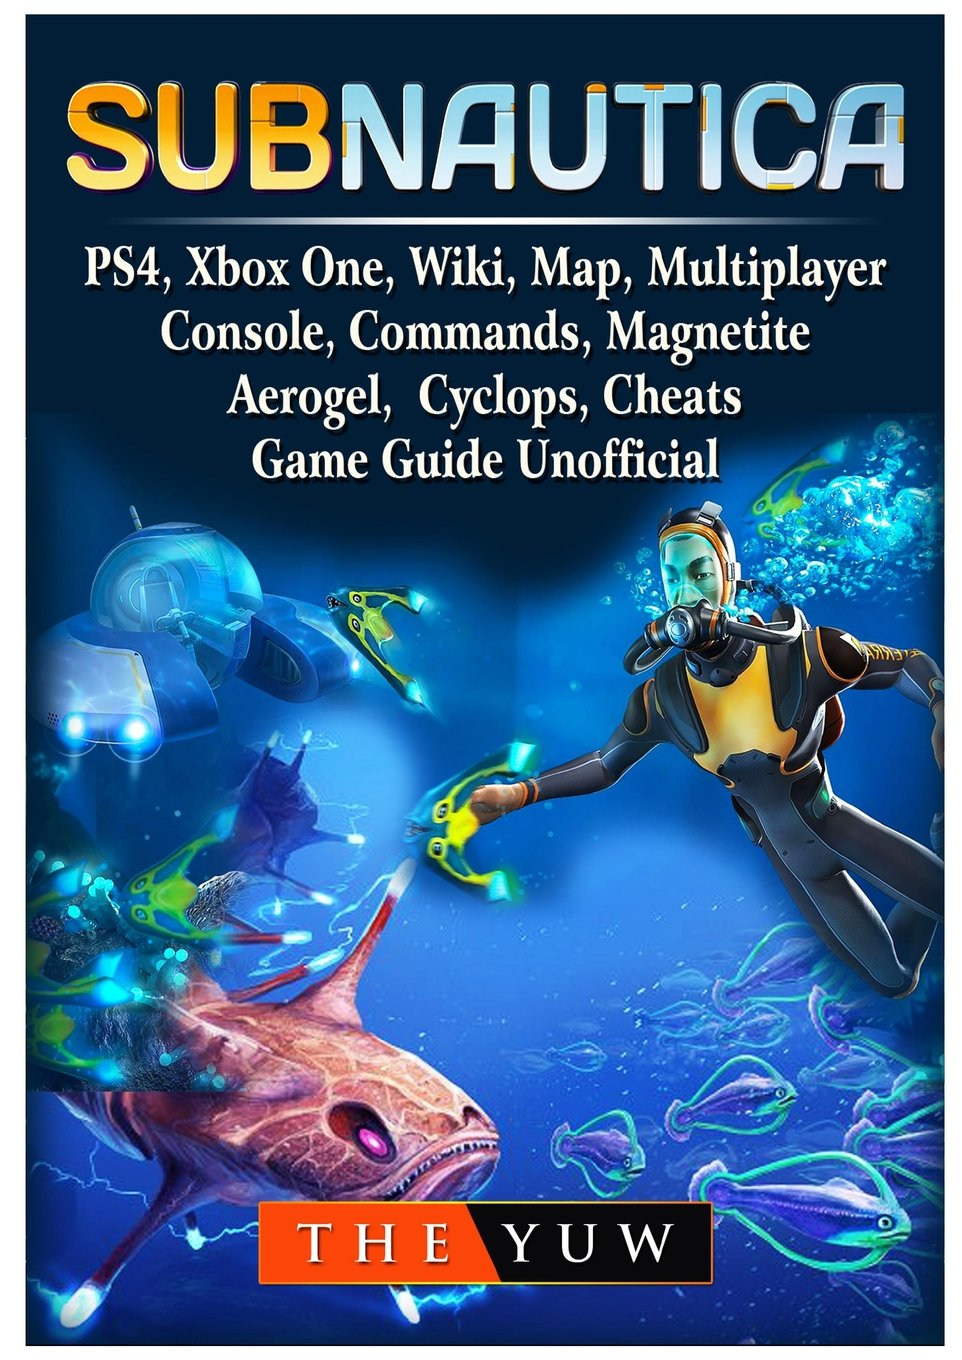 Subnautica, PS4, Xbox One, Wiki, Map, Multiplayer, Console ... on social games, history games, museum games, google games, print and play war games, newsletter games, primary games, business games, python games, pixel games, technology games, sports games, card games, shopping games, sandbox games, special games, home games,